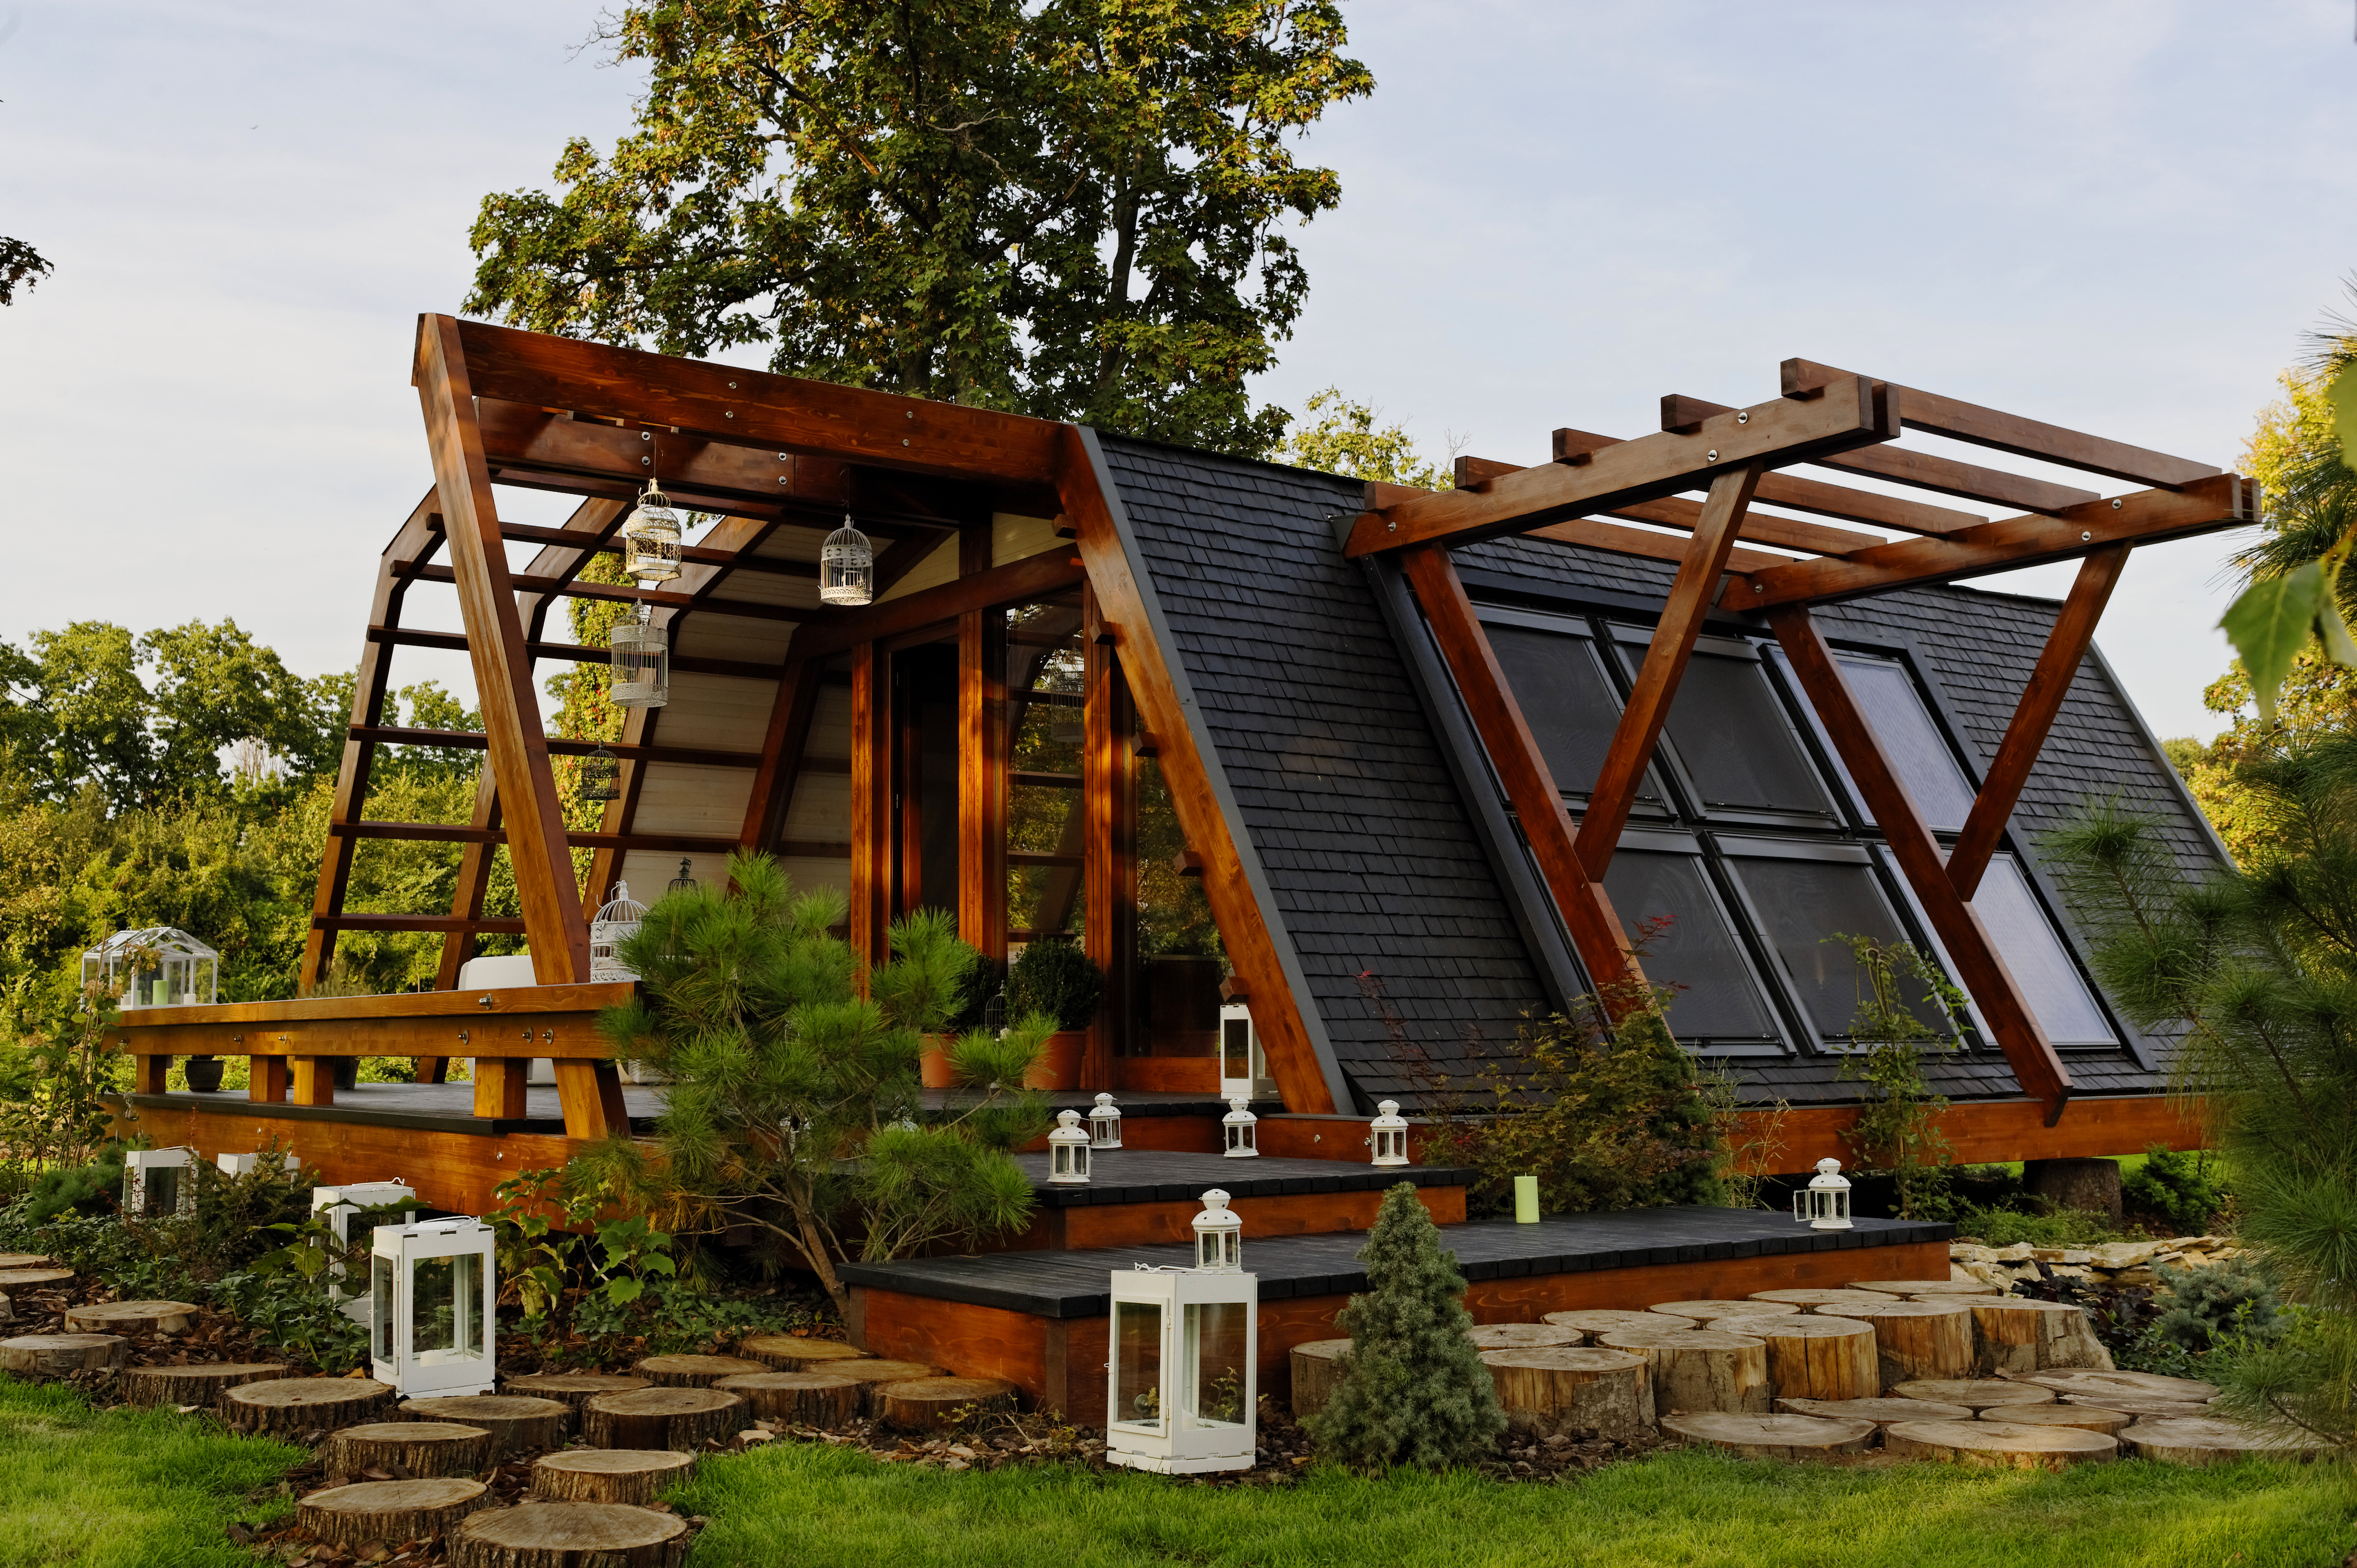 Soleta  The House That Brings A New Lifestyle - Zero energy home design